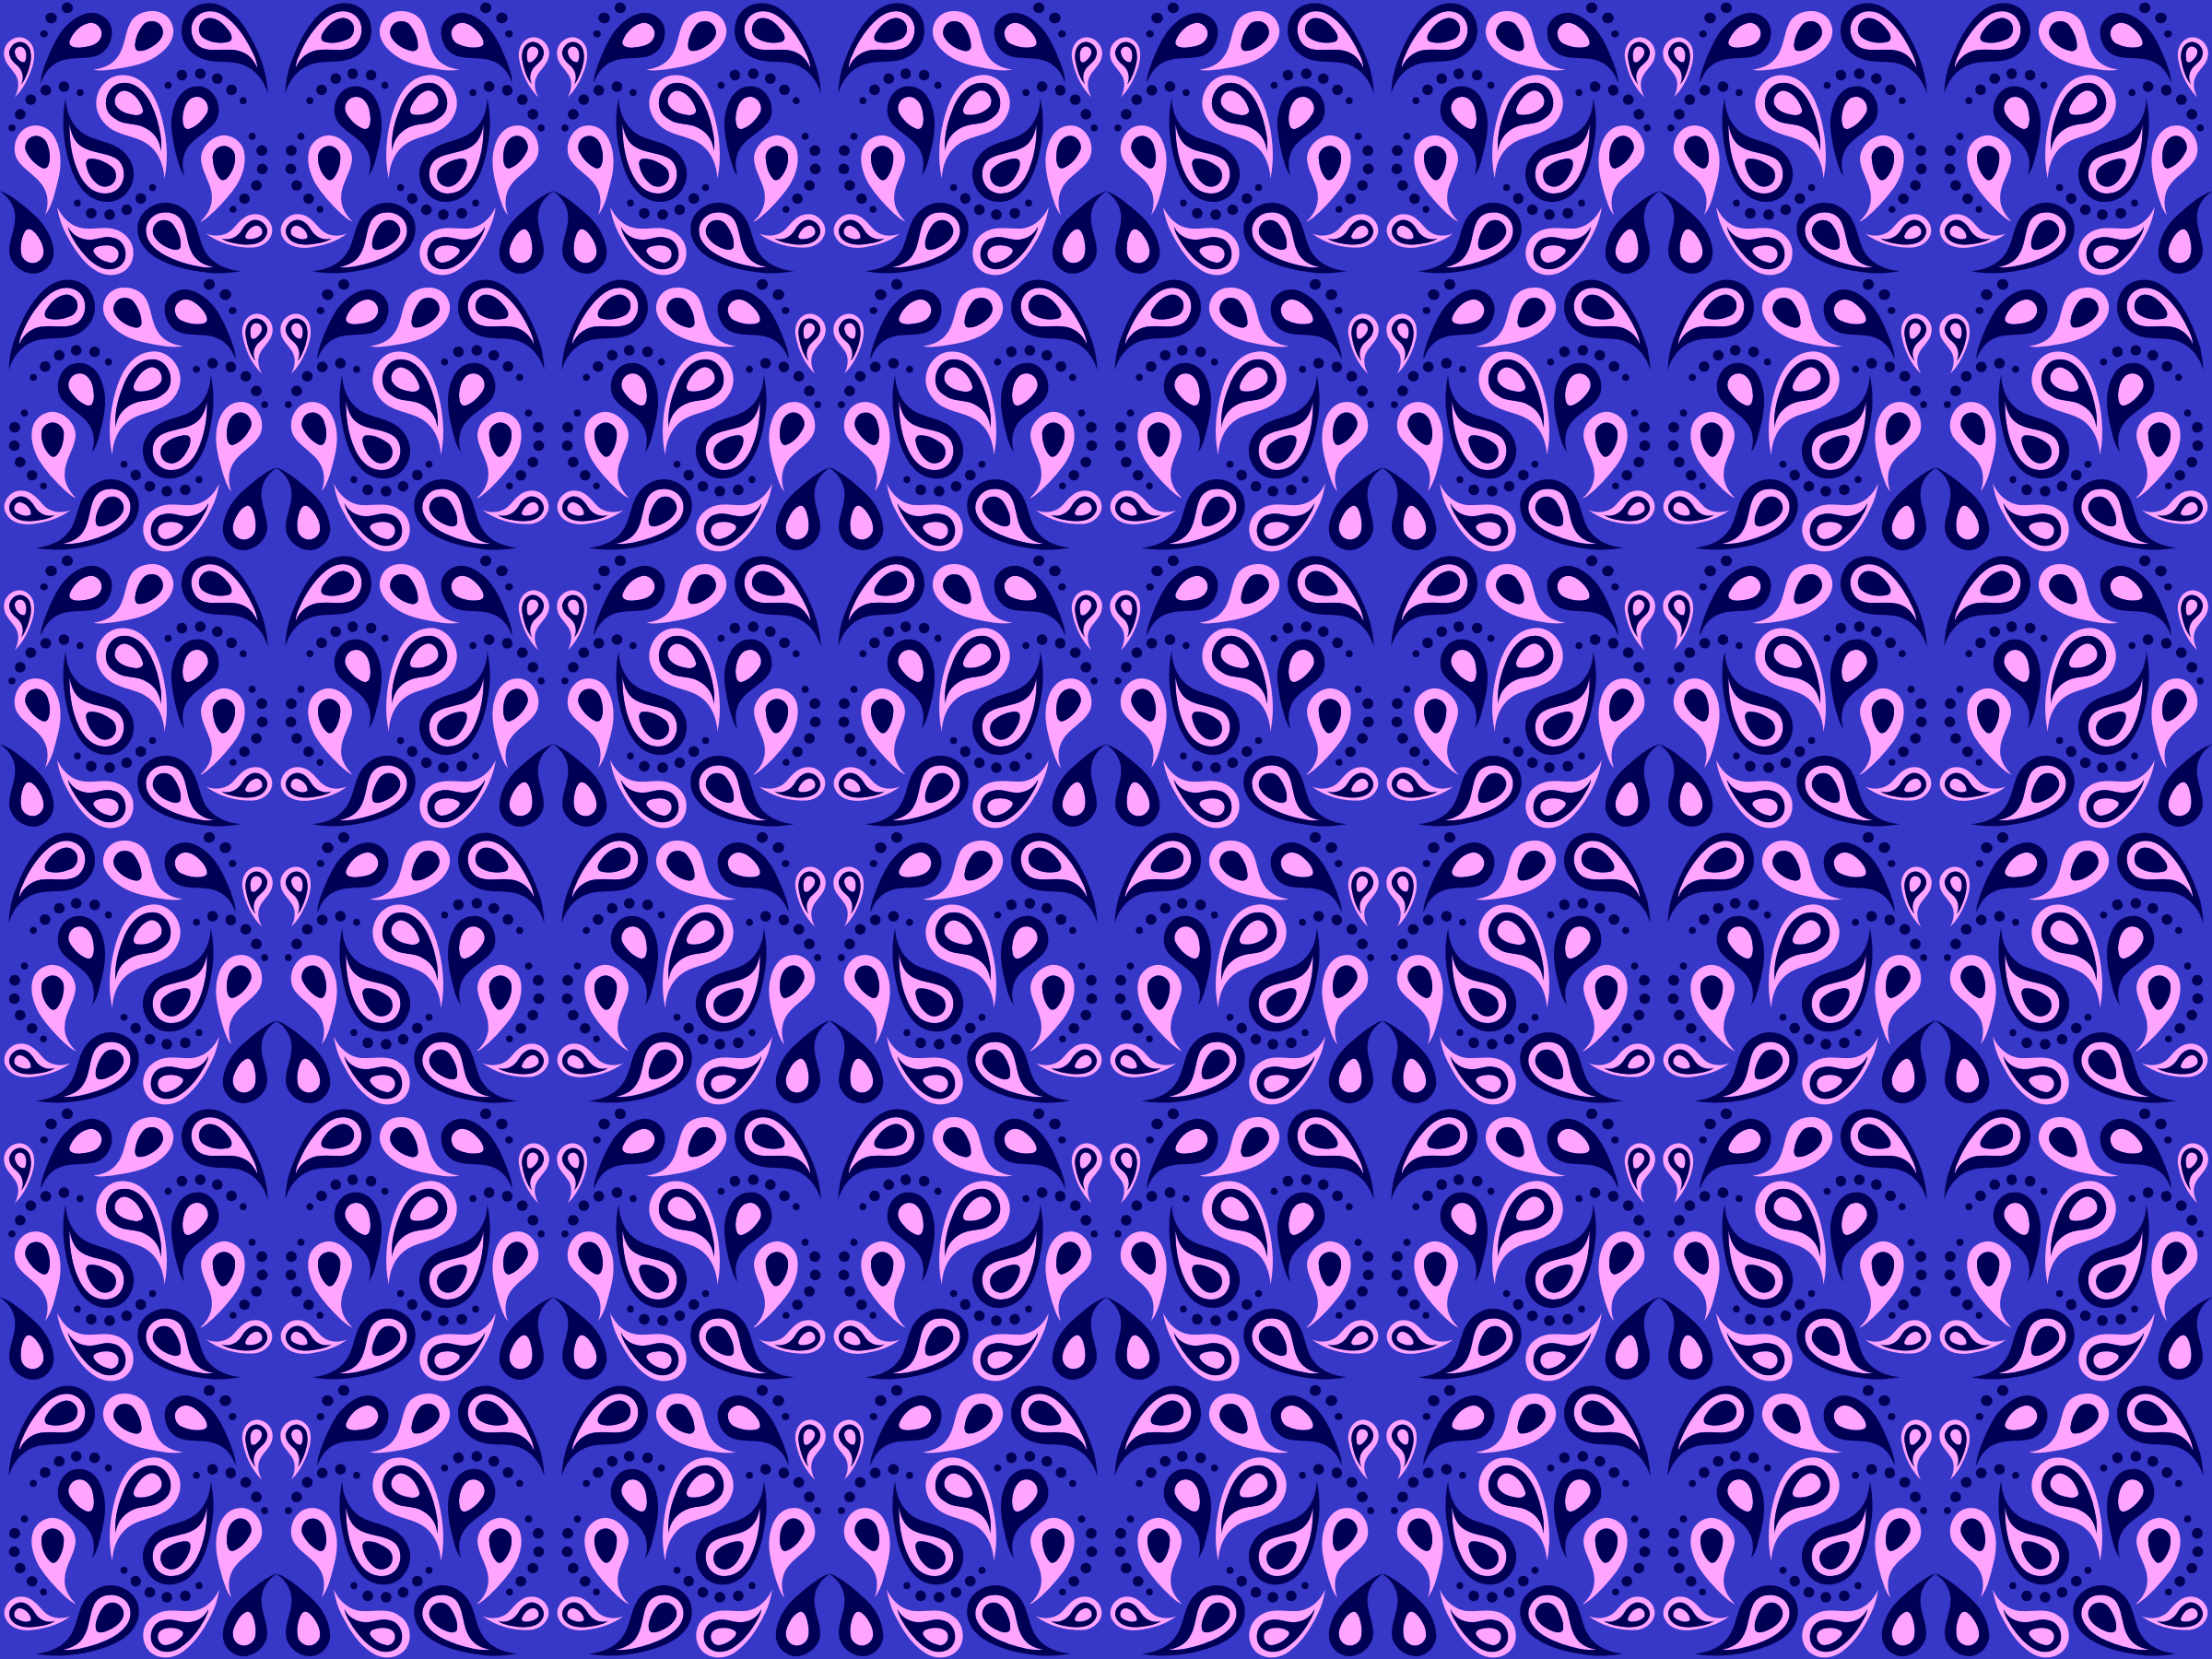 Background pattern 337 (colour 3) by Firkin